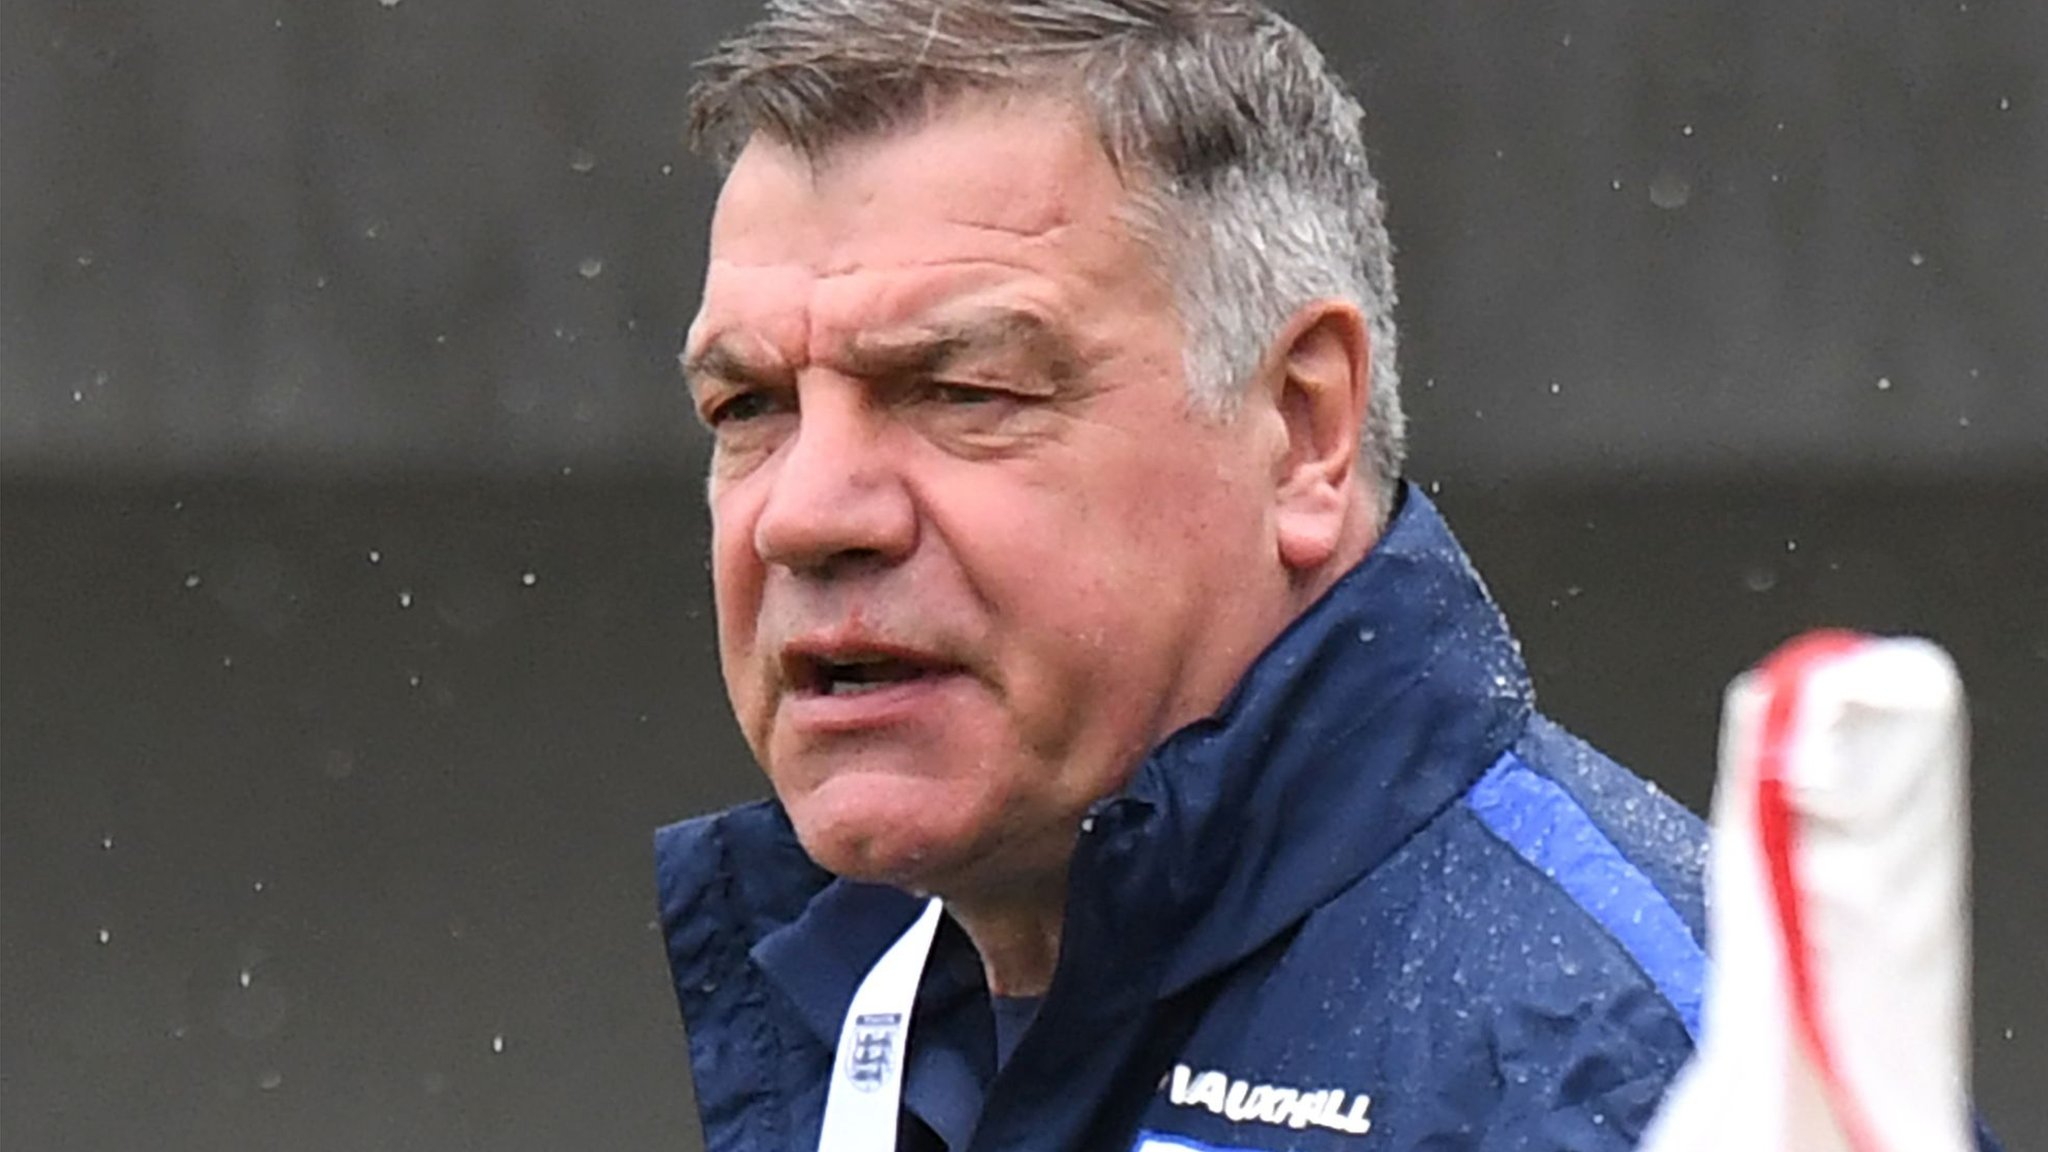 Sam Allardyce: England manager allegations investigated by FA